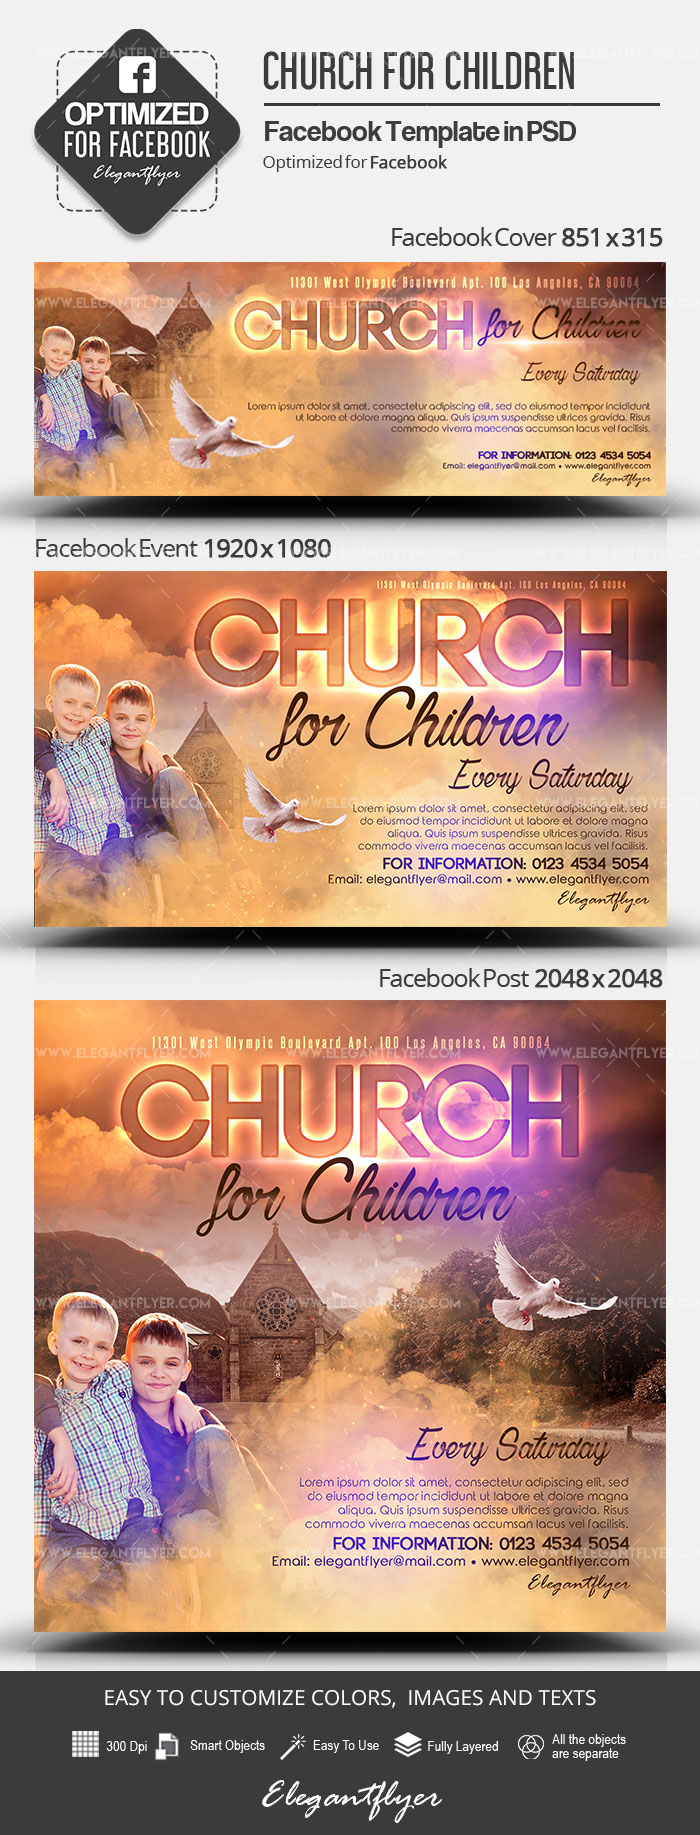 Church for Children – Facebook Cover Template in PSD + Post + Event cover